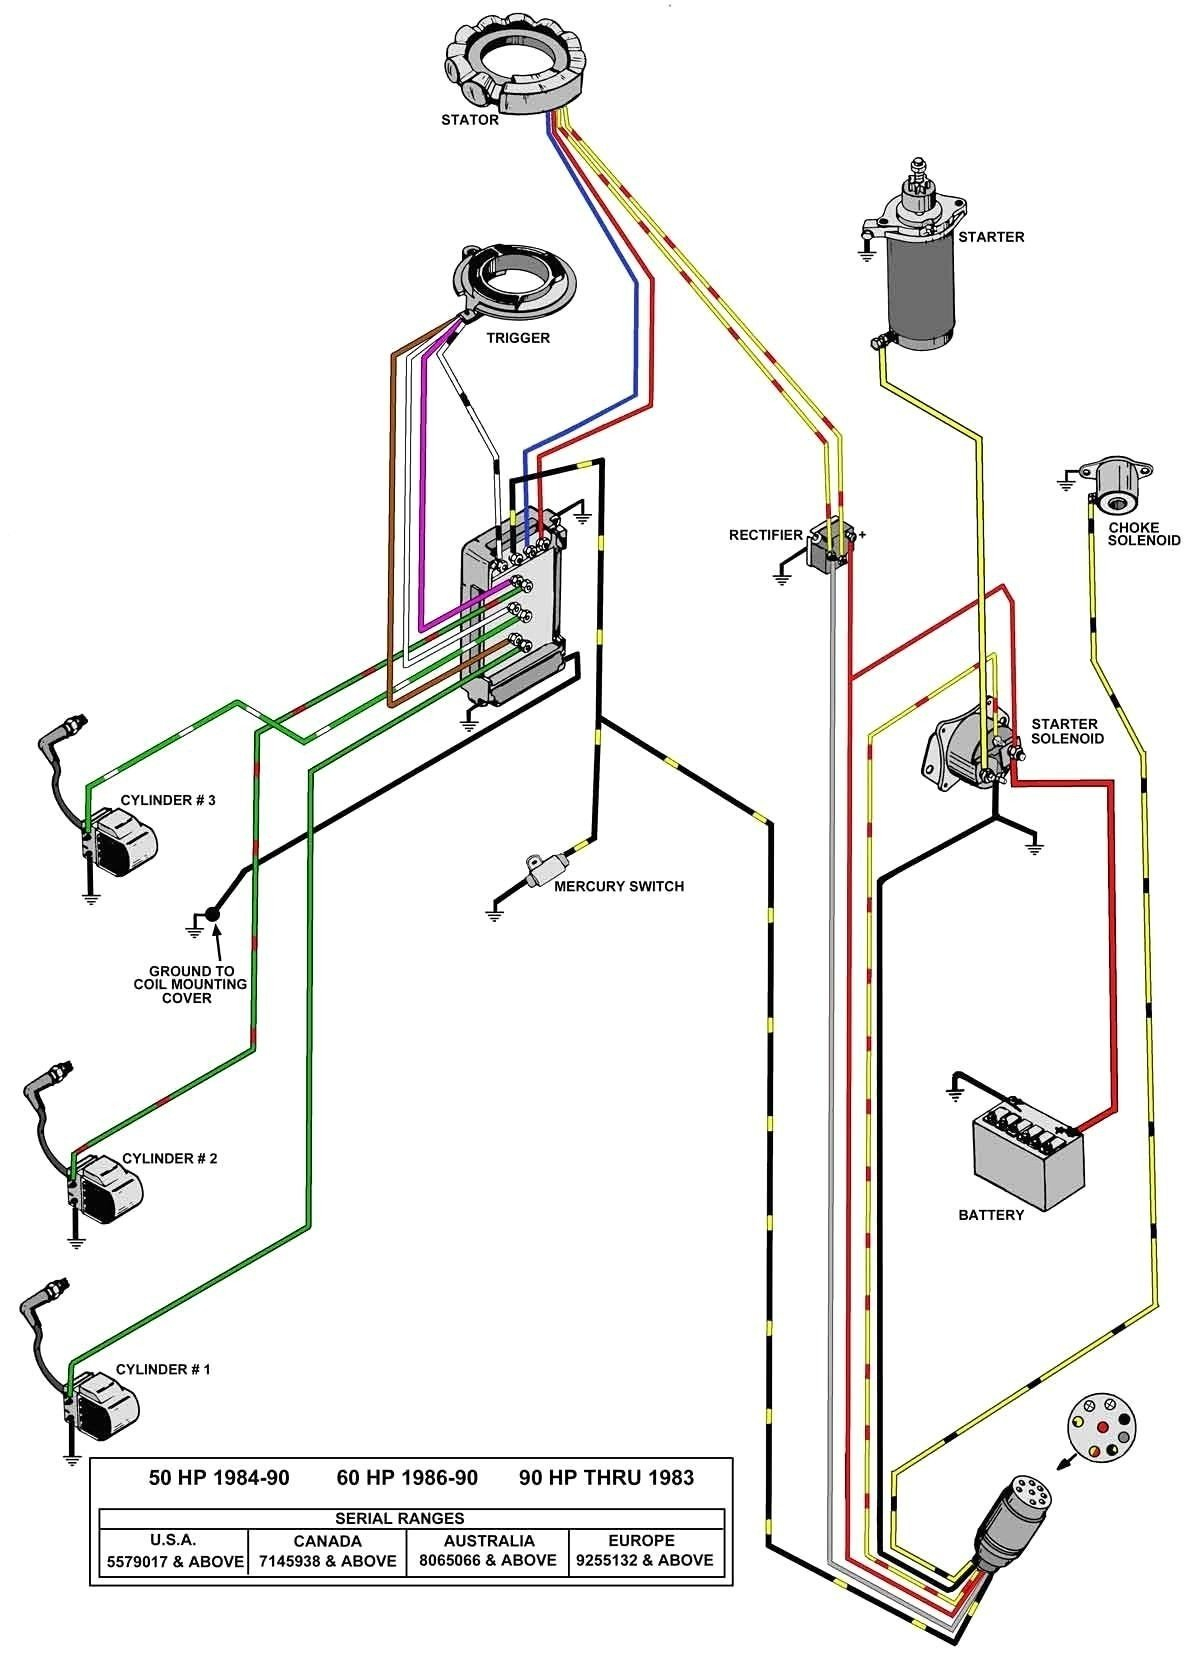 40 Hp Mercury Outboard Wiring Diagram Hecho   Wiring Diagram - Mercury Outboard Rectifier Wiring Diagram